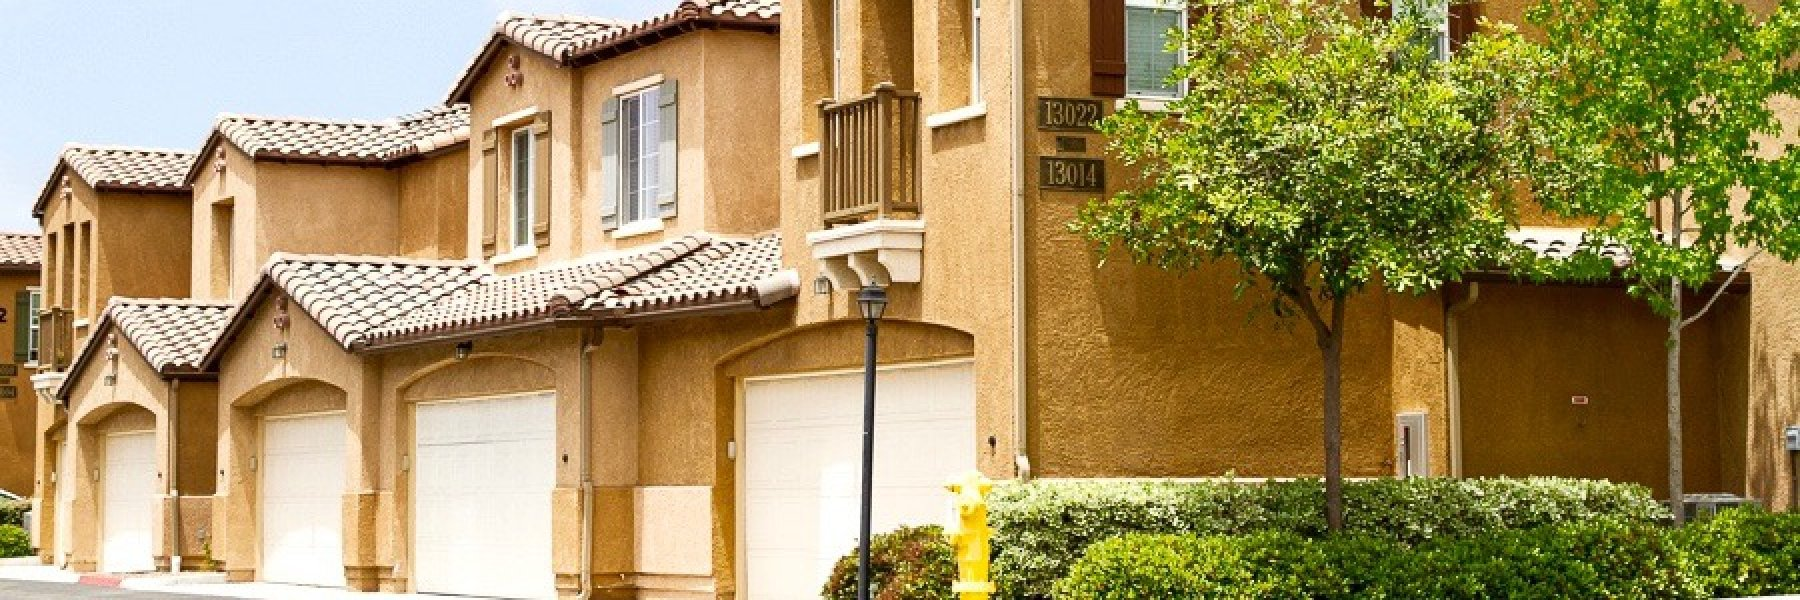 Airoso is a community of attached homes in San Diego California